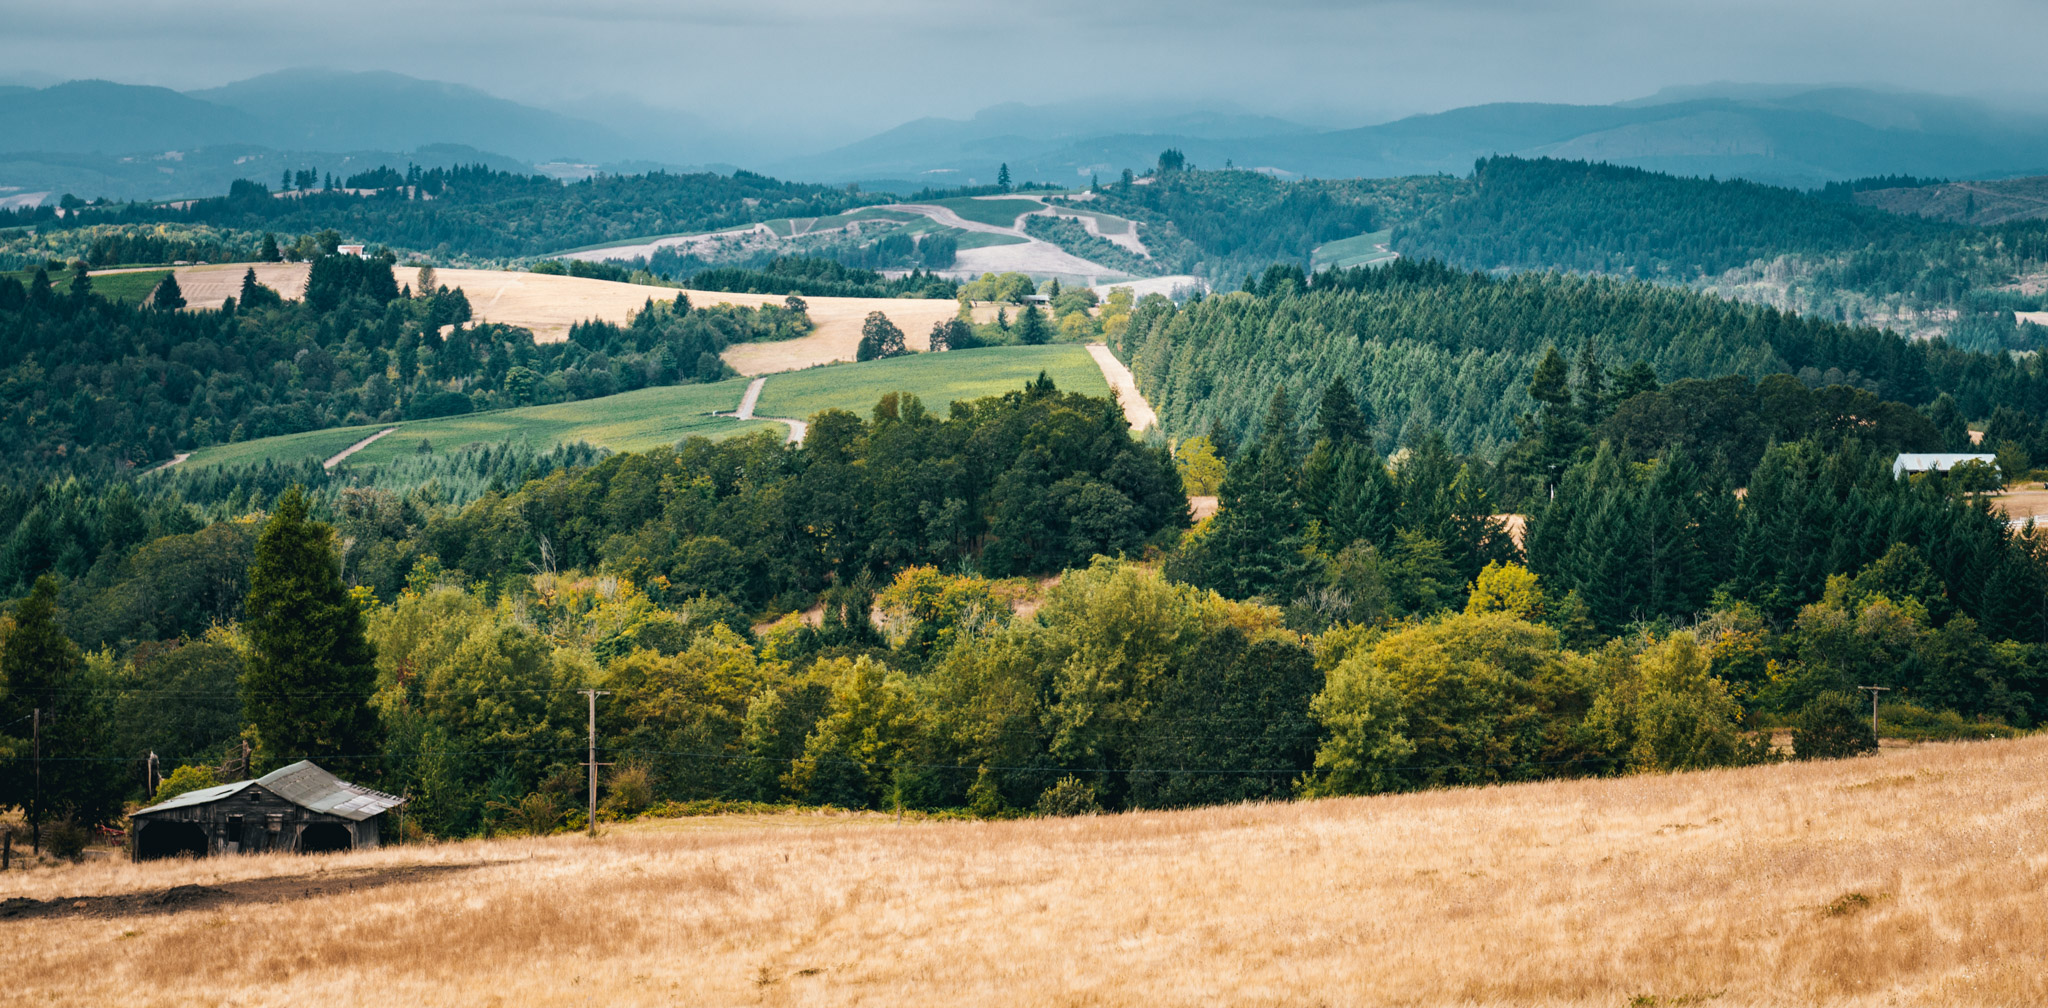 US : Oregon : A view of the Willamette Valley from Bald Peak Rd in Newberg